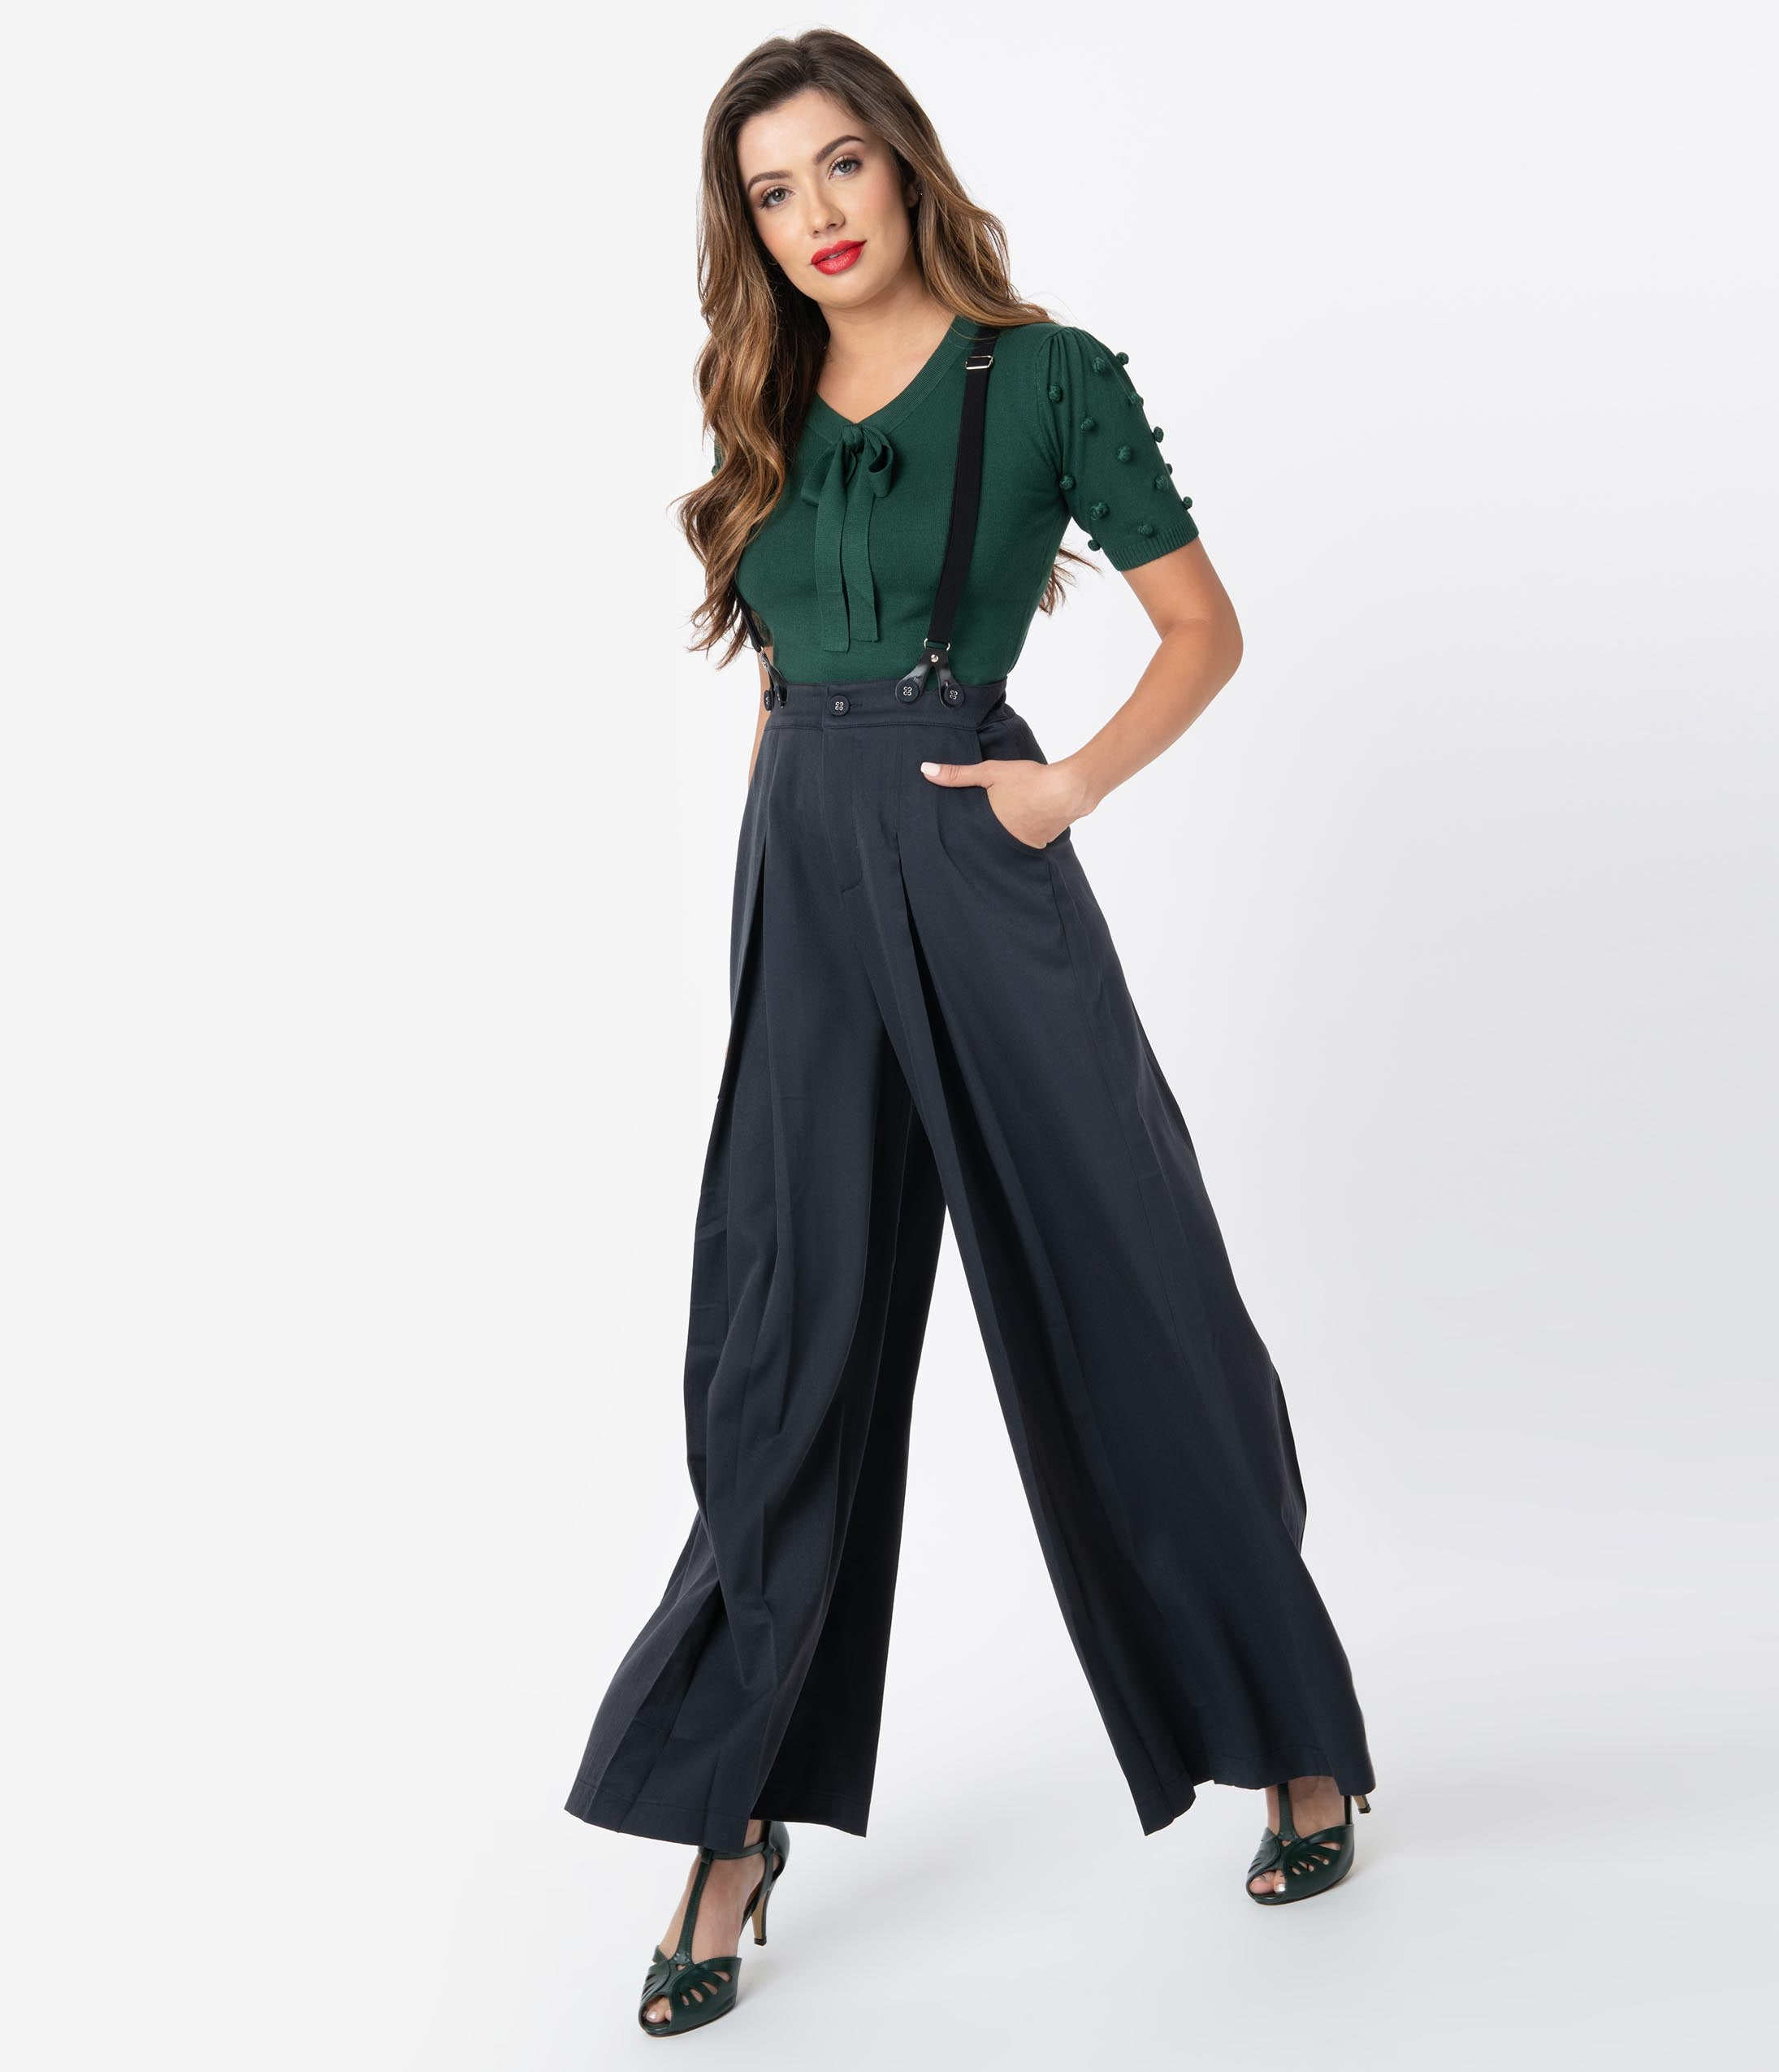 Vintage High Waisted Trousers, Sailor Pants, Jeans Voodoo Vixen 1940S Style Navy Wide Leg Pleated Suspender Trousers $62.00 AT vintagedancer.com